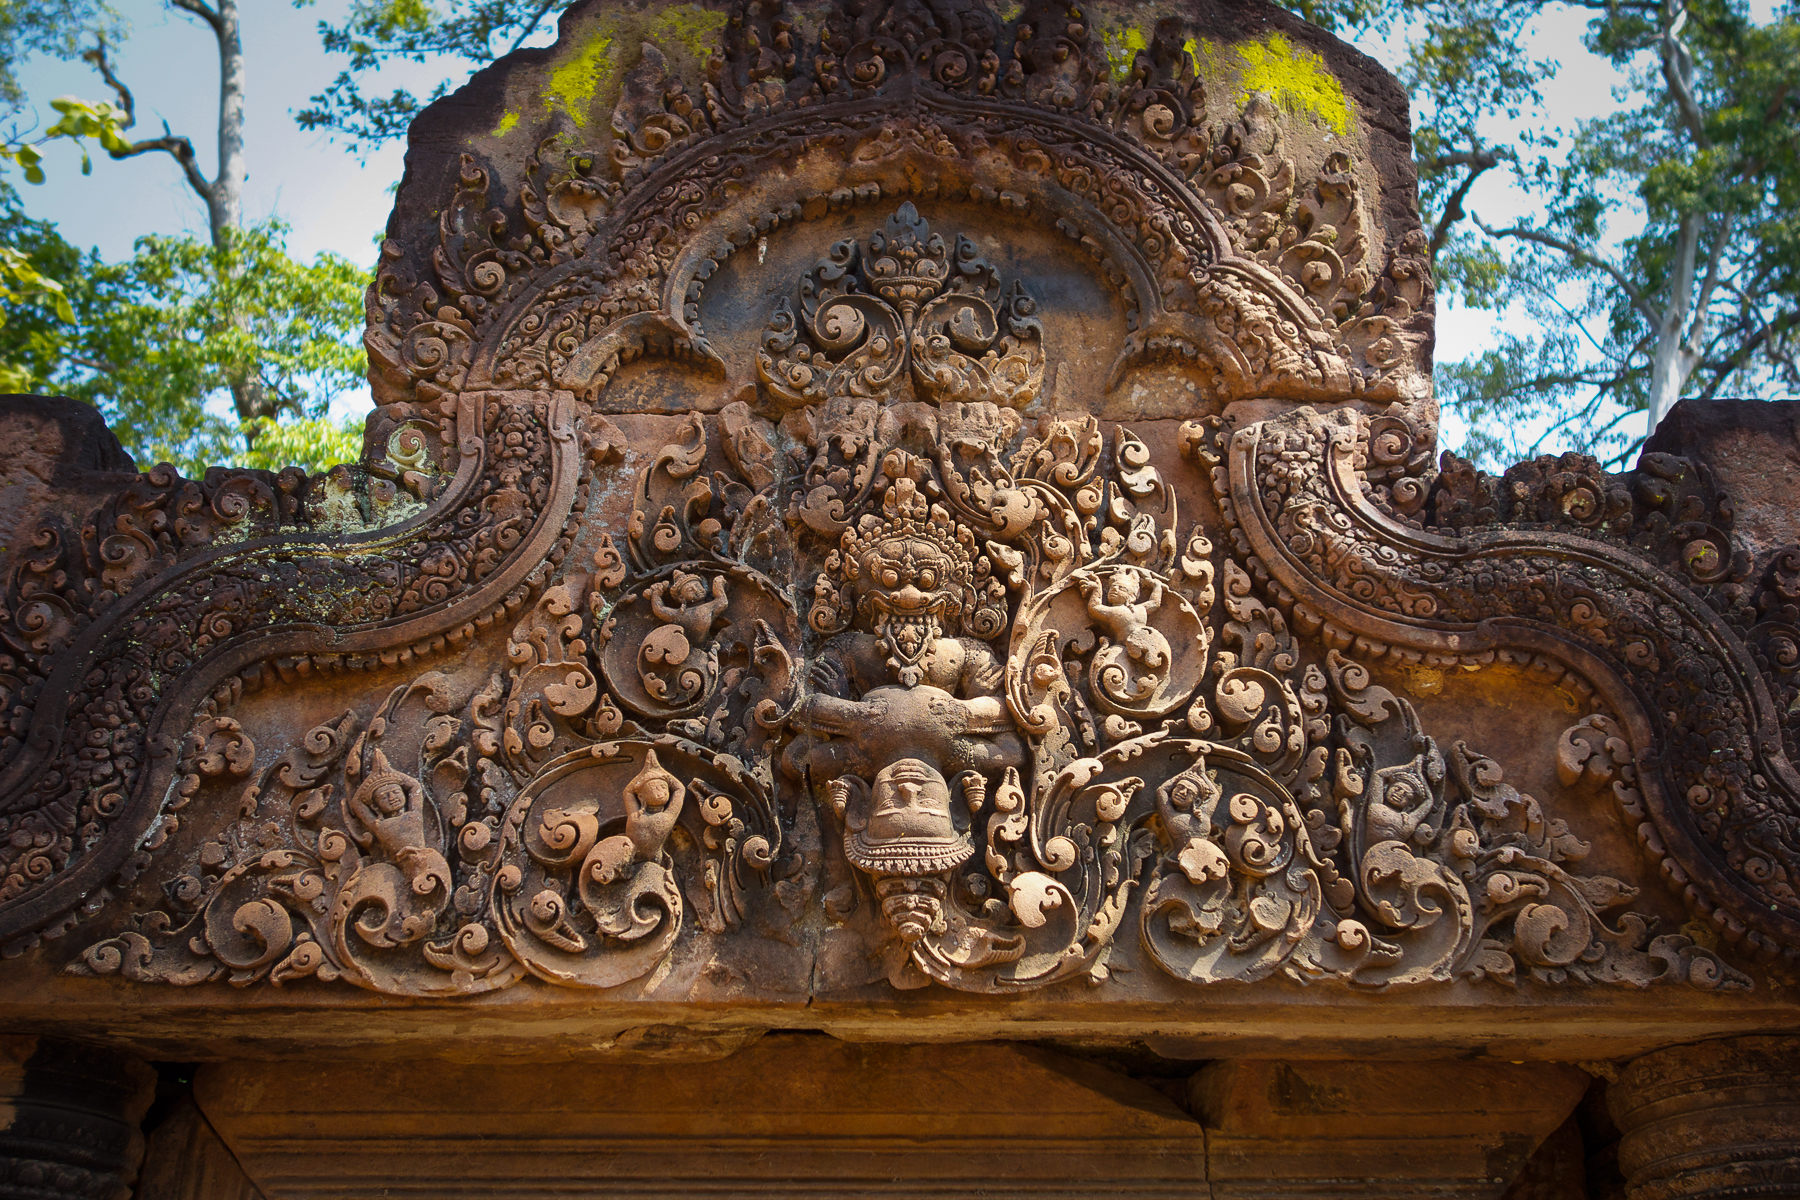 Carving in Banteay Srei